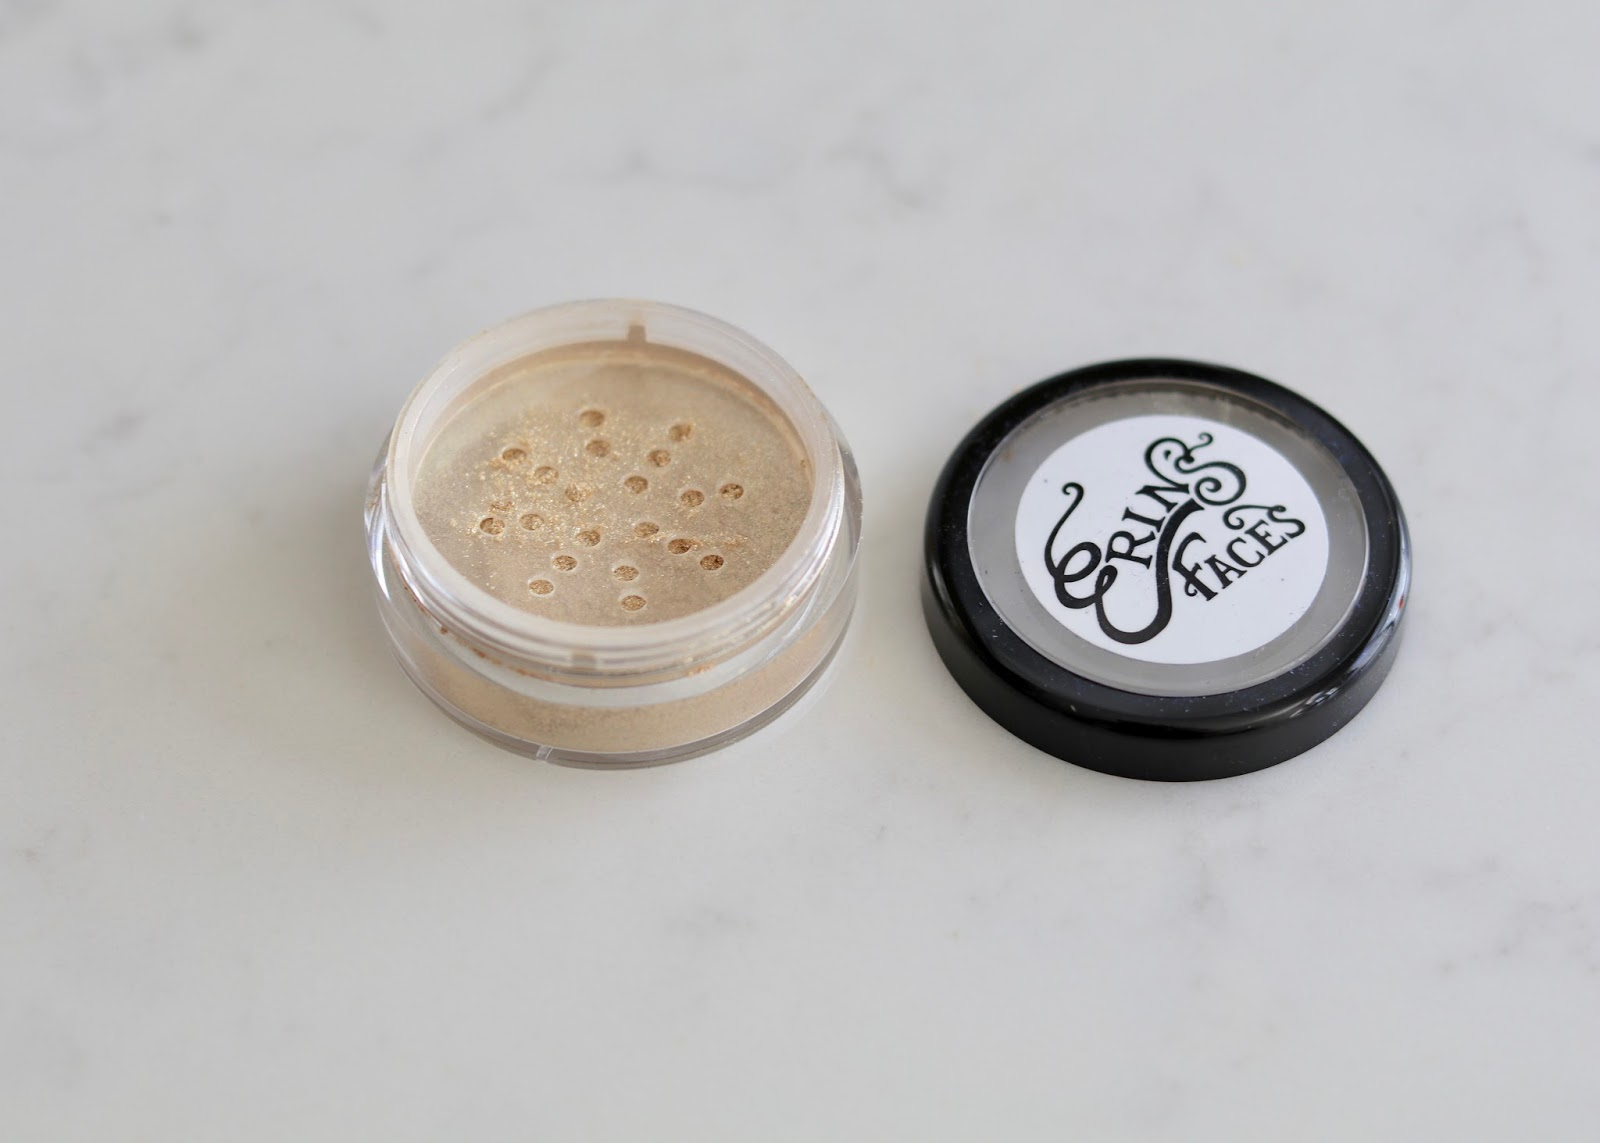 Erin's Faces Magic Dust, Erin's Faces Product Review